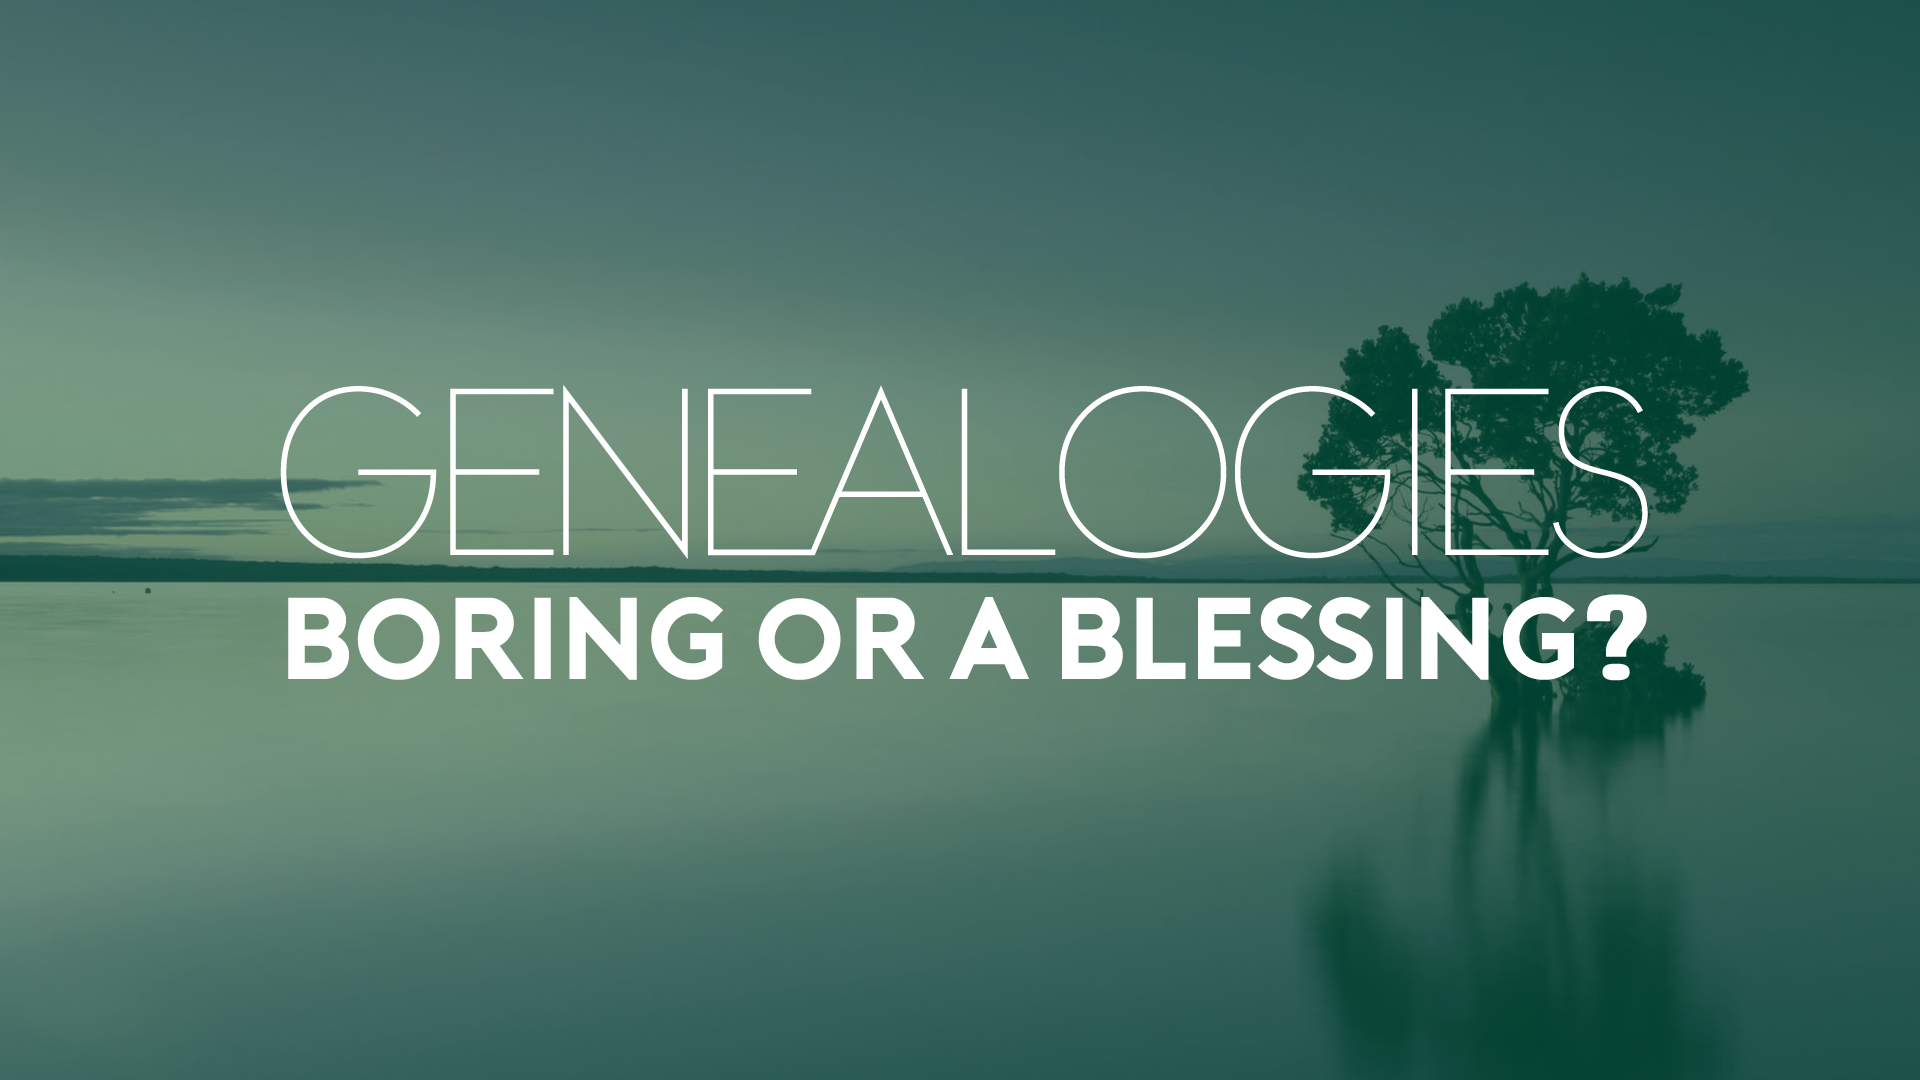 Genealogies - Boring or a Blessing.jpg